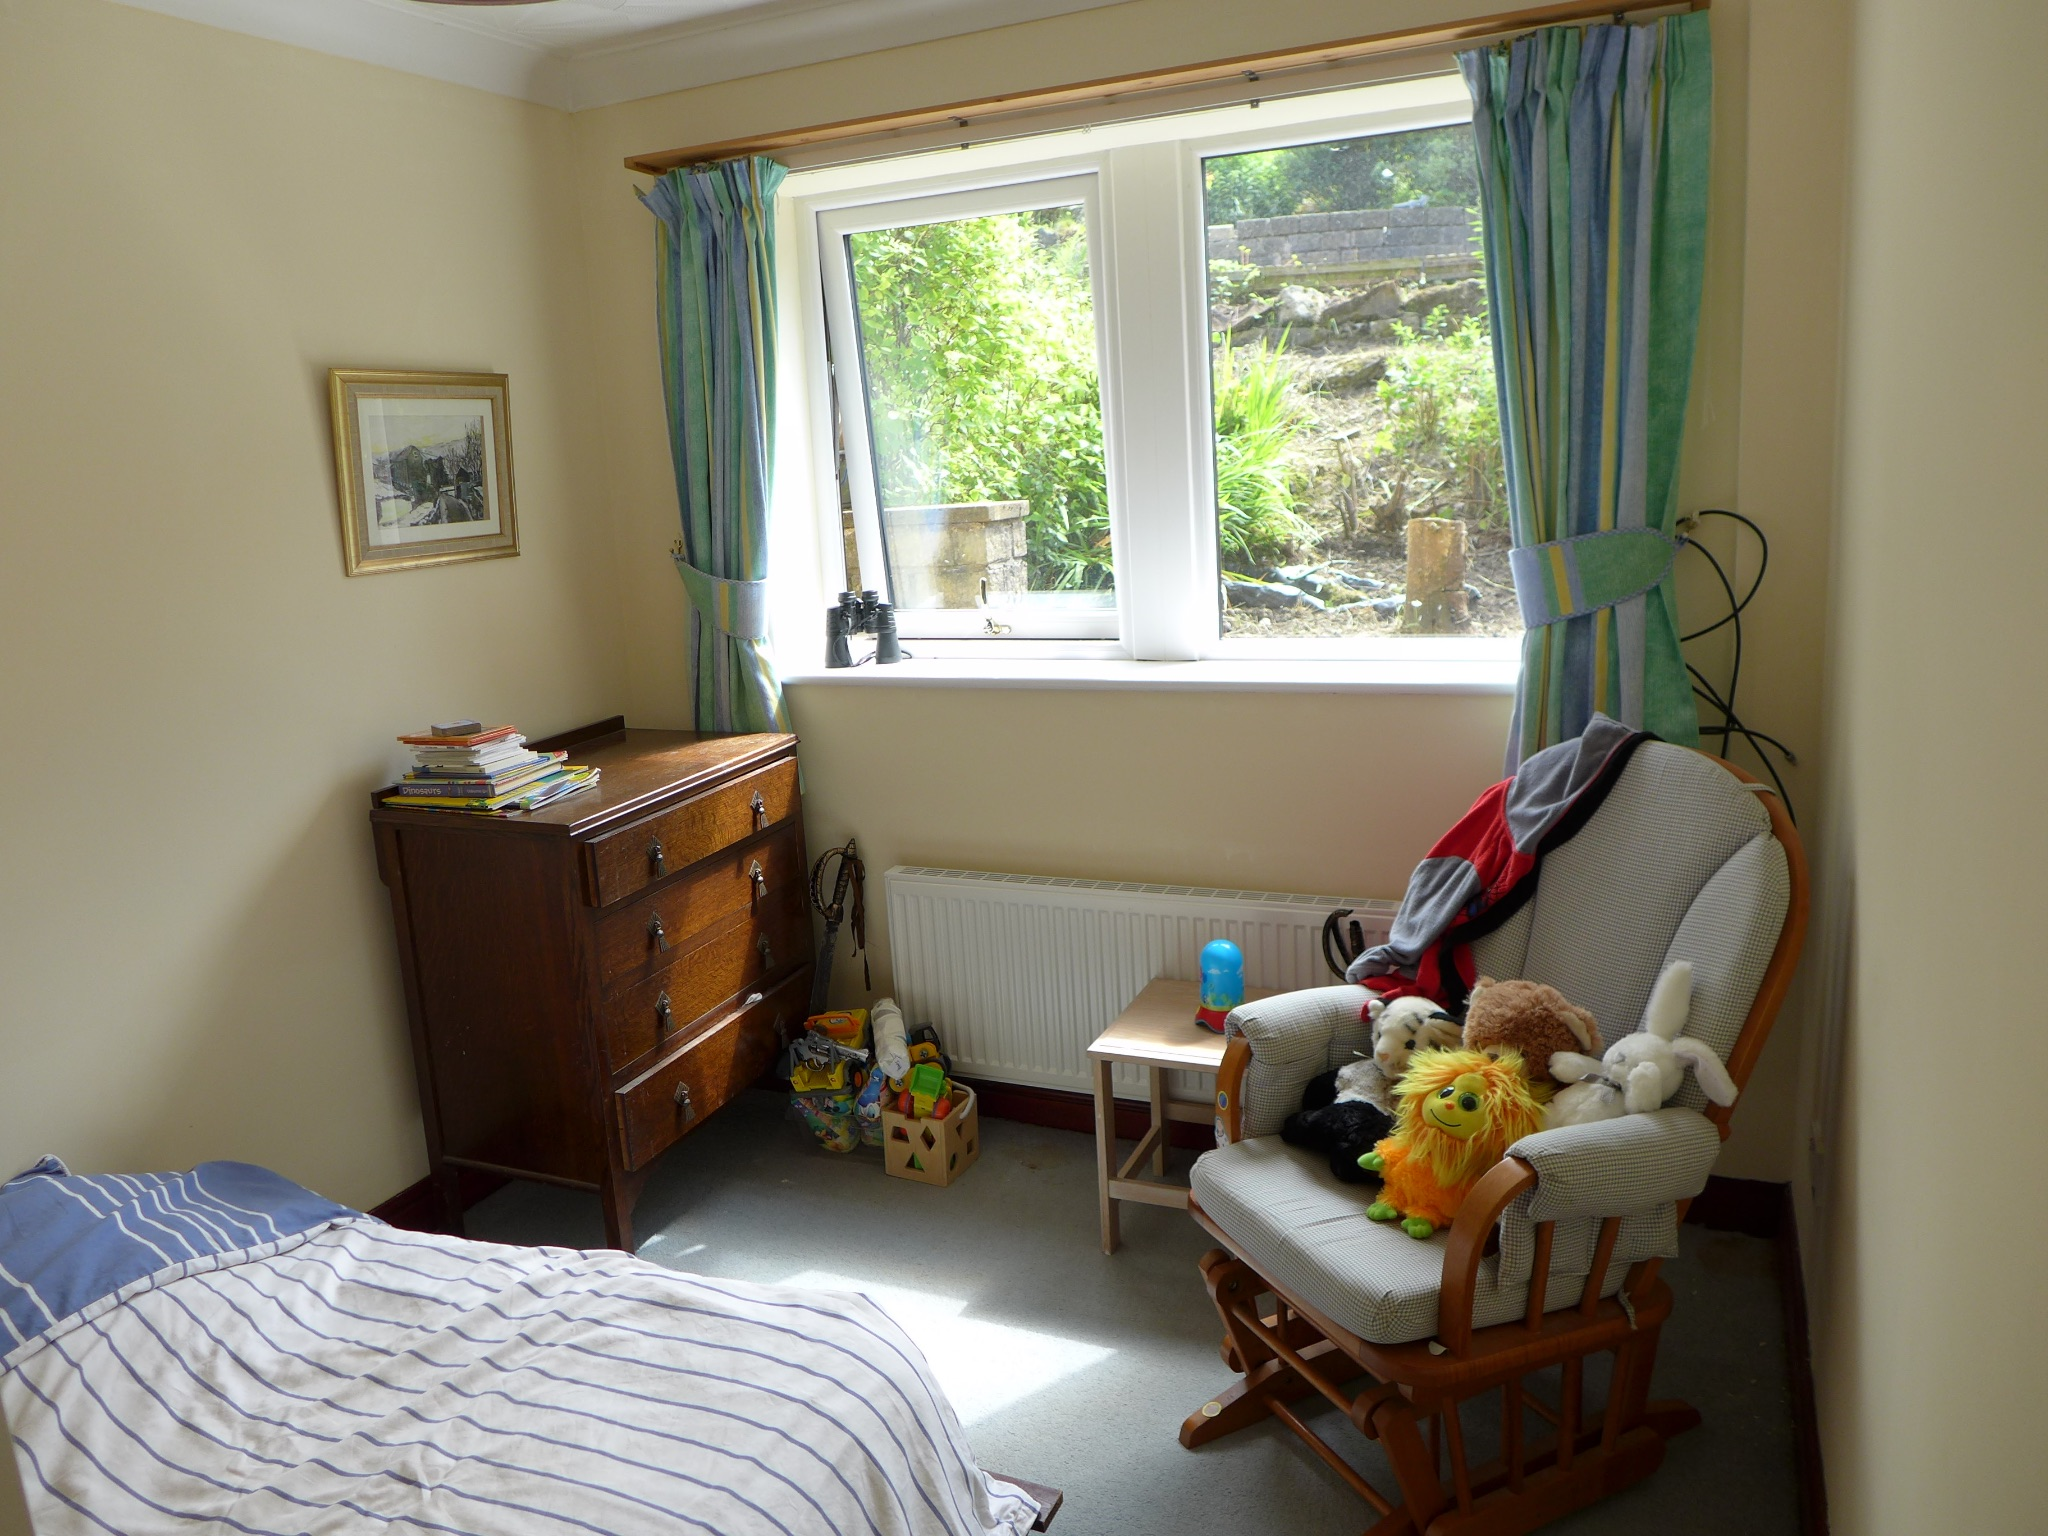 4 bedroom detached house For Sale in Todmorden - Photograph 14.